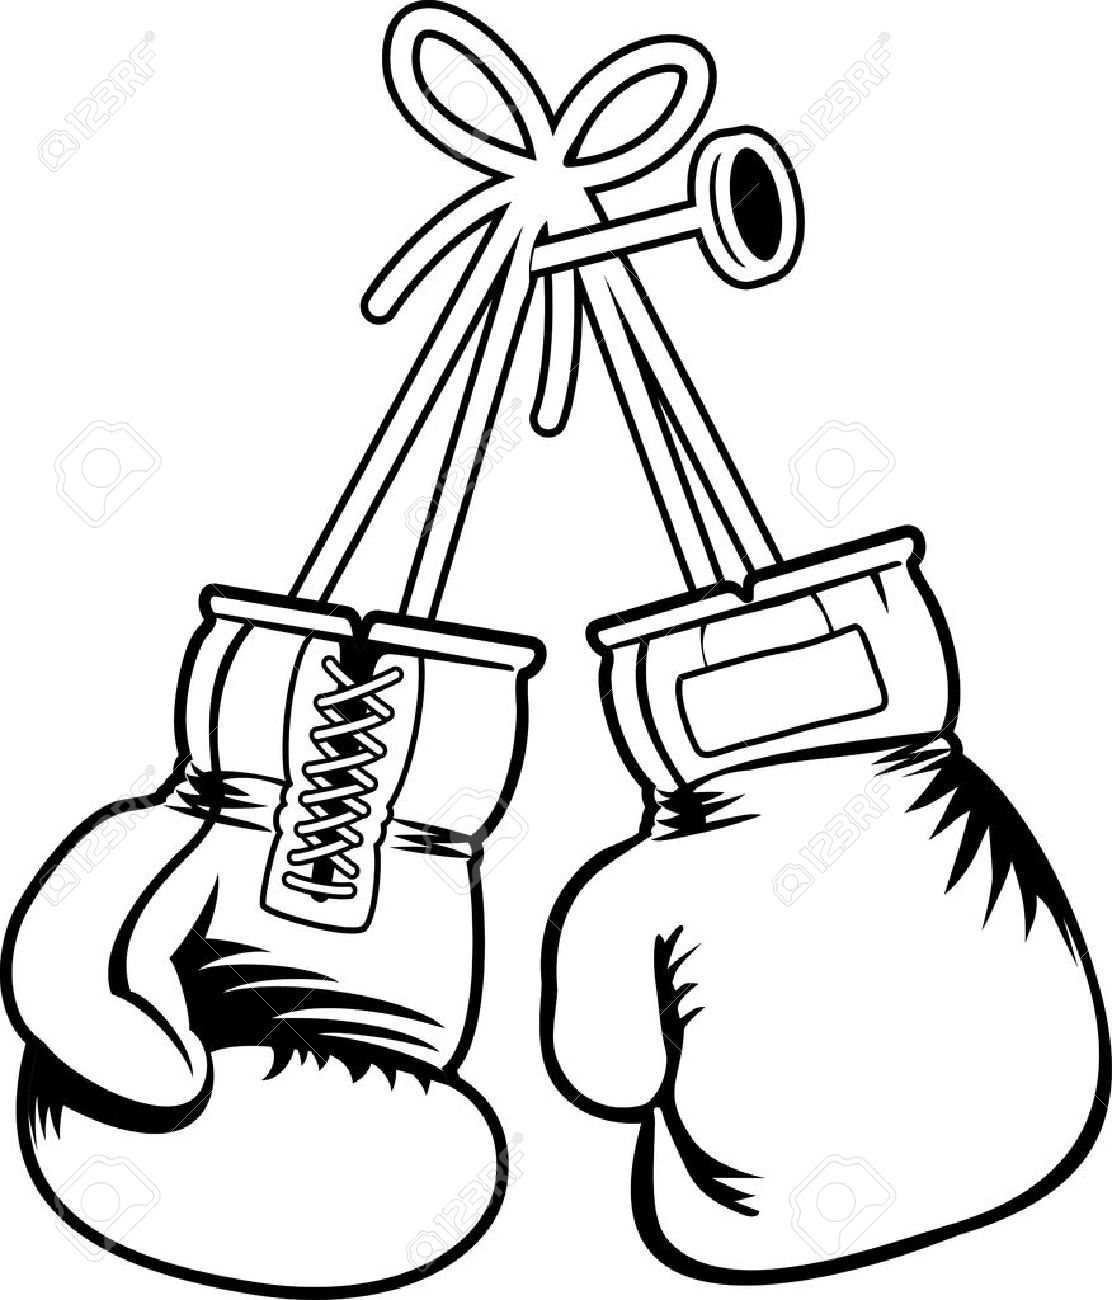 Hanging Boxing Gloves Drawing At Getdrawings Com Free For Personal Use Hanging Boxing Gloves